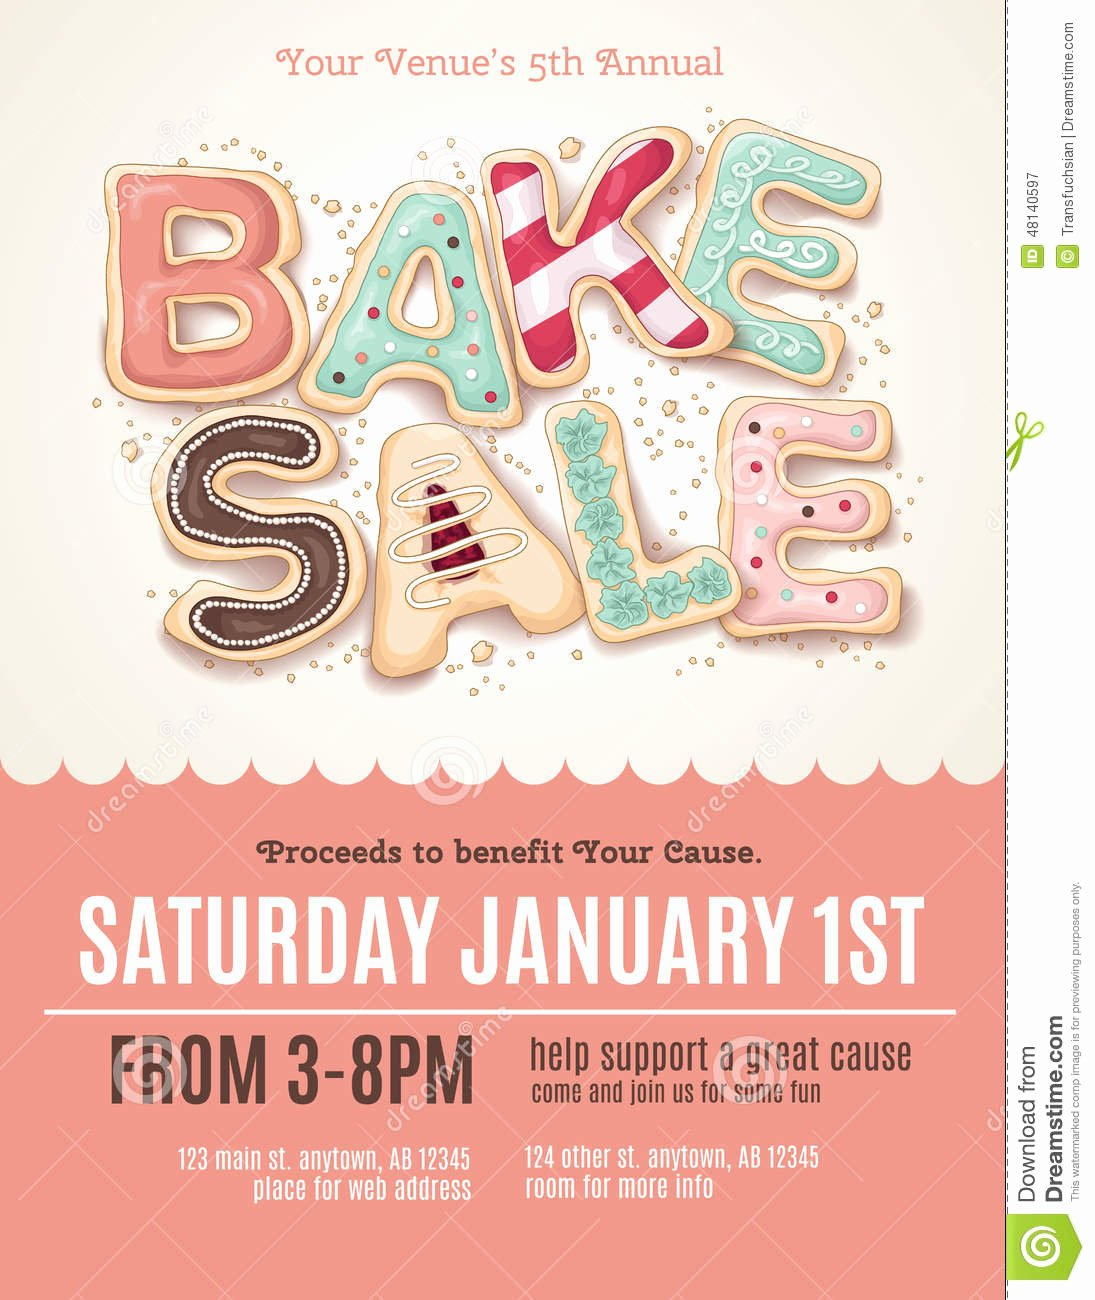 Free Bake Sale Template Best Of Fun Cookie Bake Sale Flyer Template Stock Vector